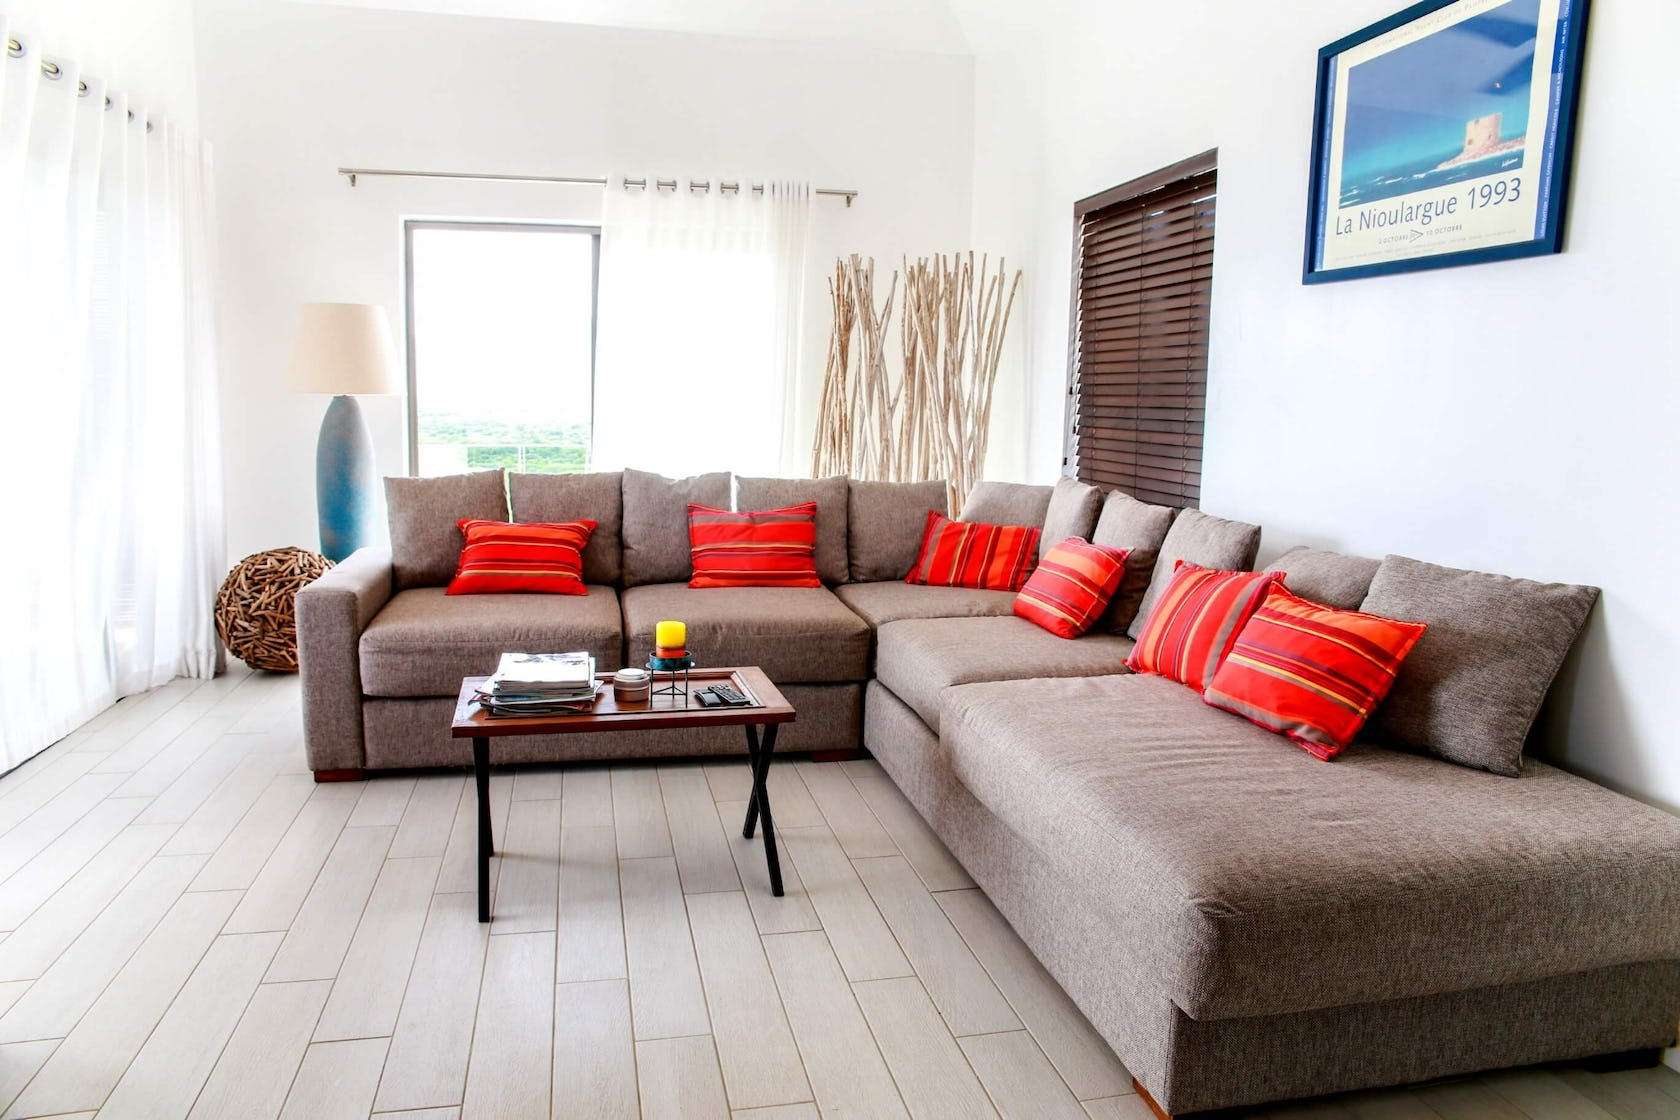 couch furniture living room room indoors interior design flooring table cushion coffee table